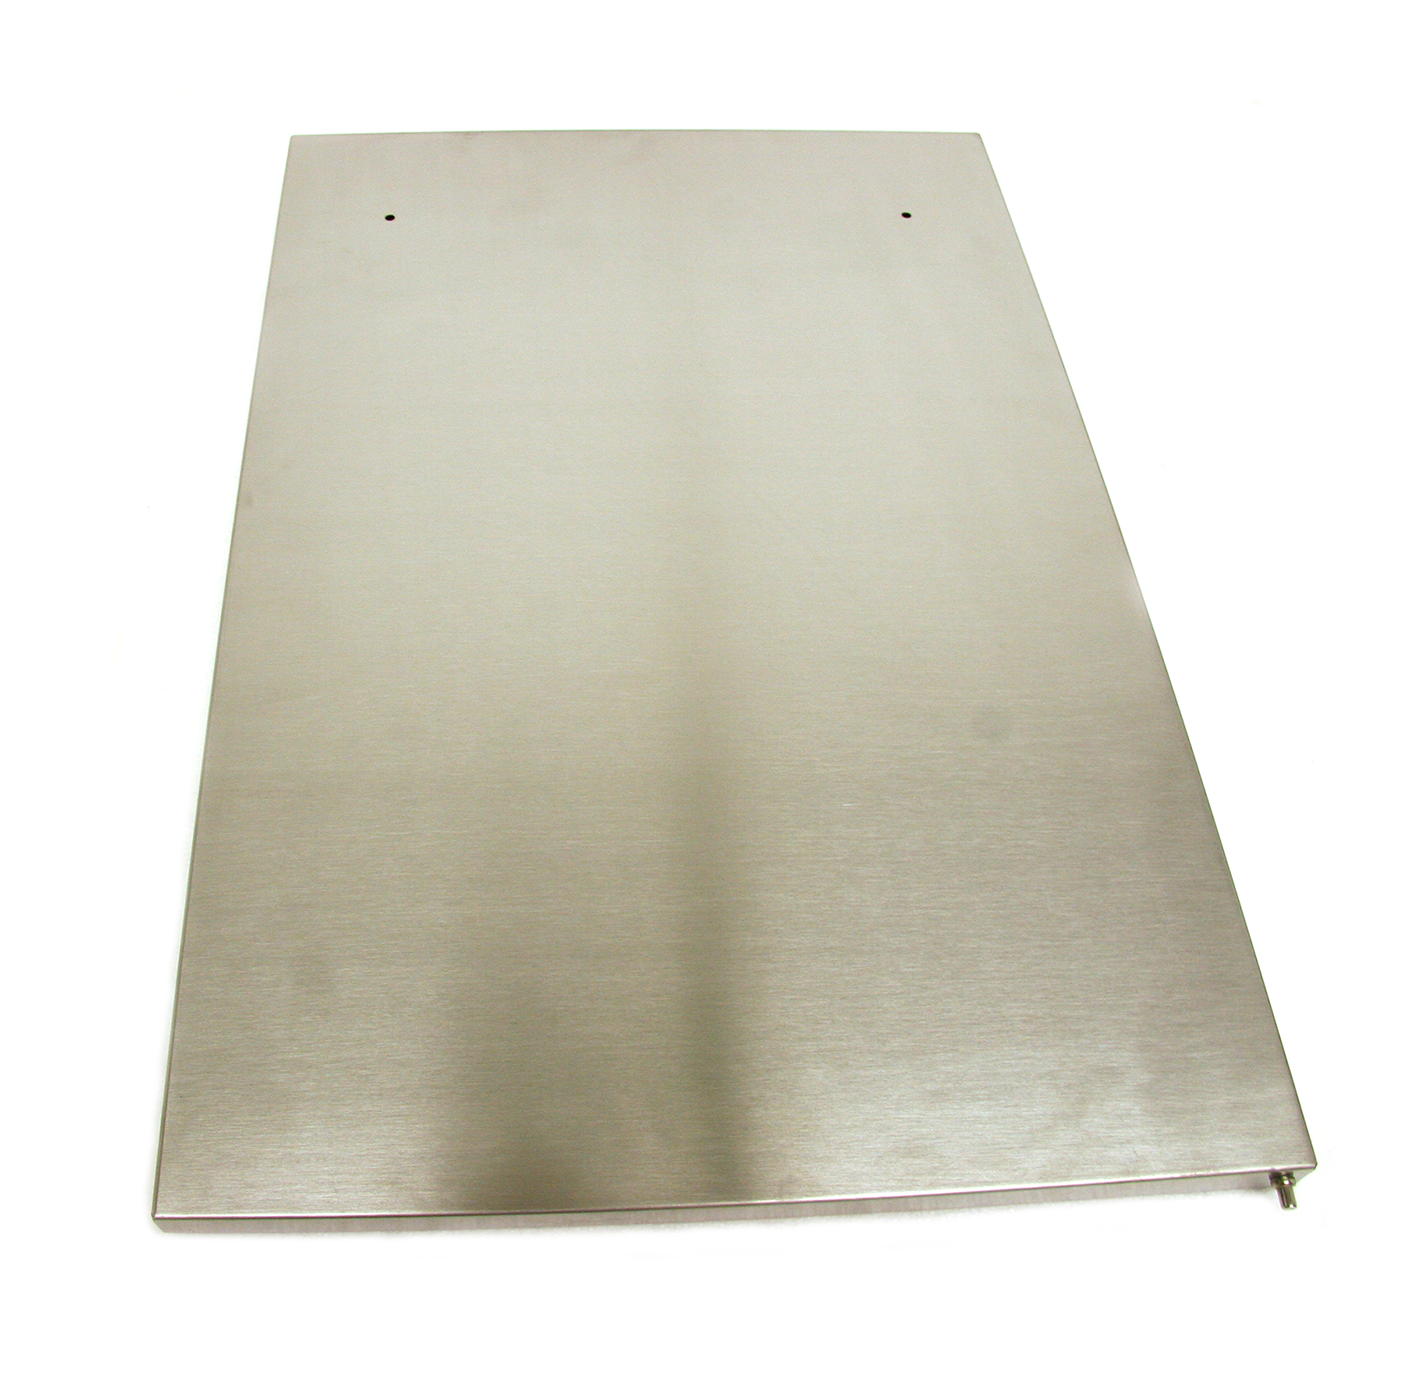 Stainless Steel Right Side Door Assembly #G618-2400-01